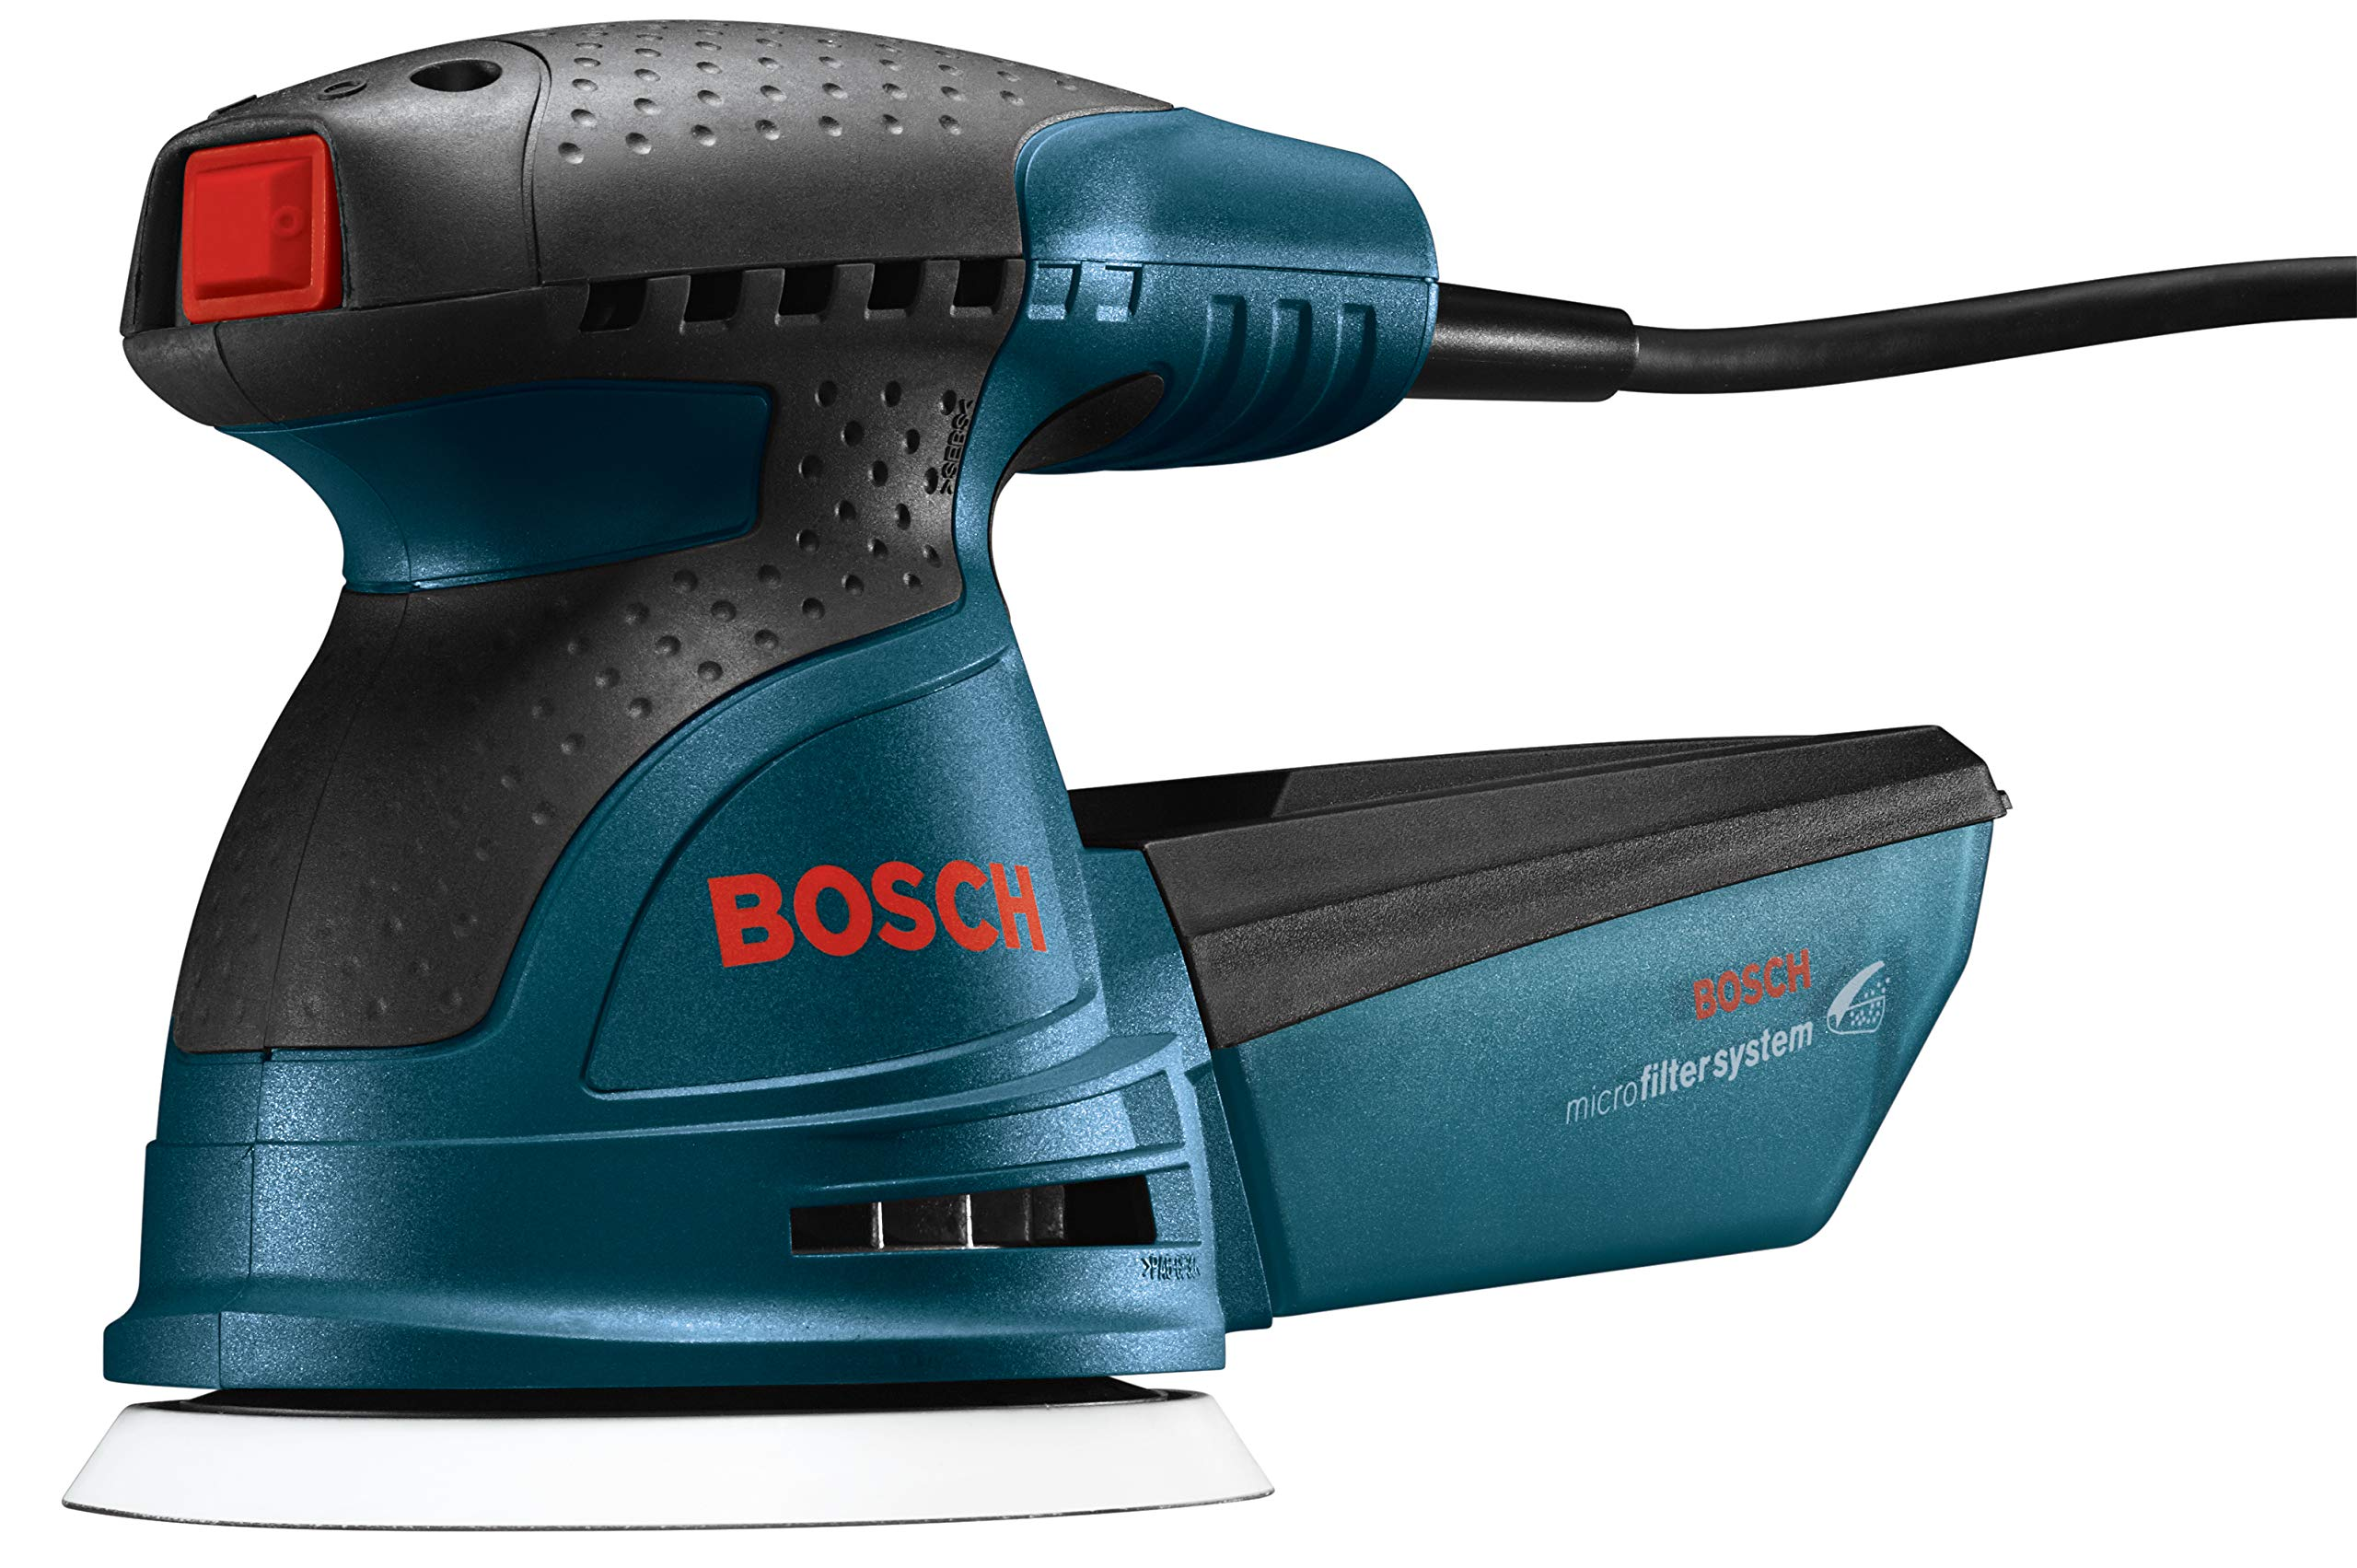 Bosch ROS20VSC Palm Sander - 2.5 Amp 5 in. Corded Variable Speed Random Orbital Sander/Polisher Kit with Dust Collector and Soft Carrying Bag by Bosch